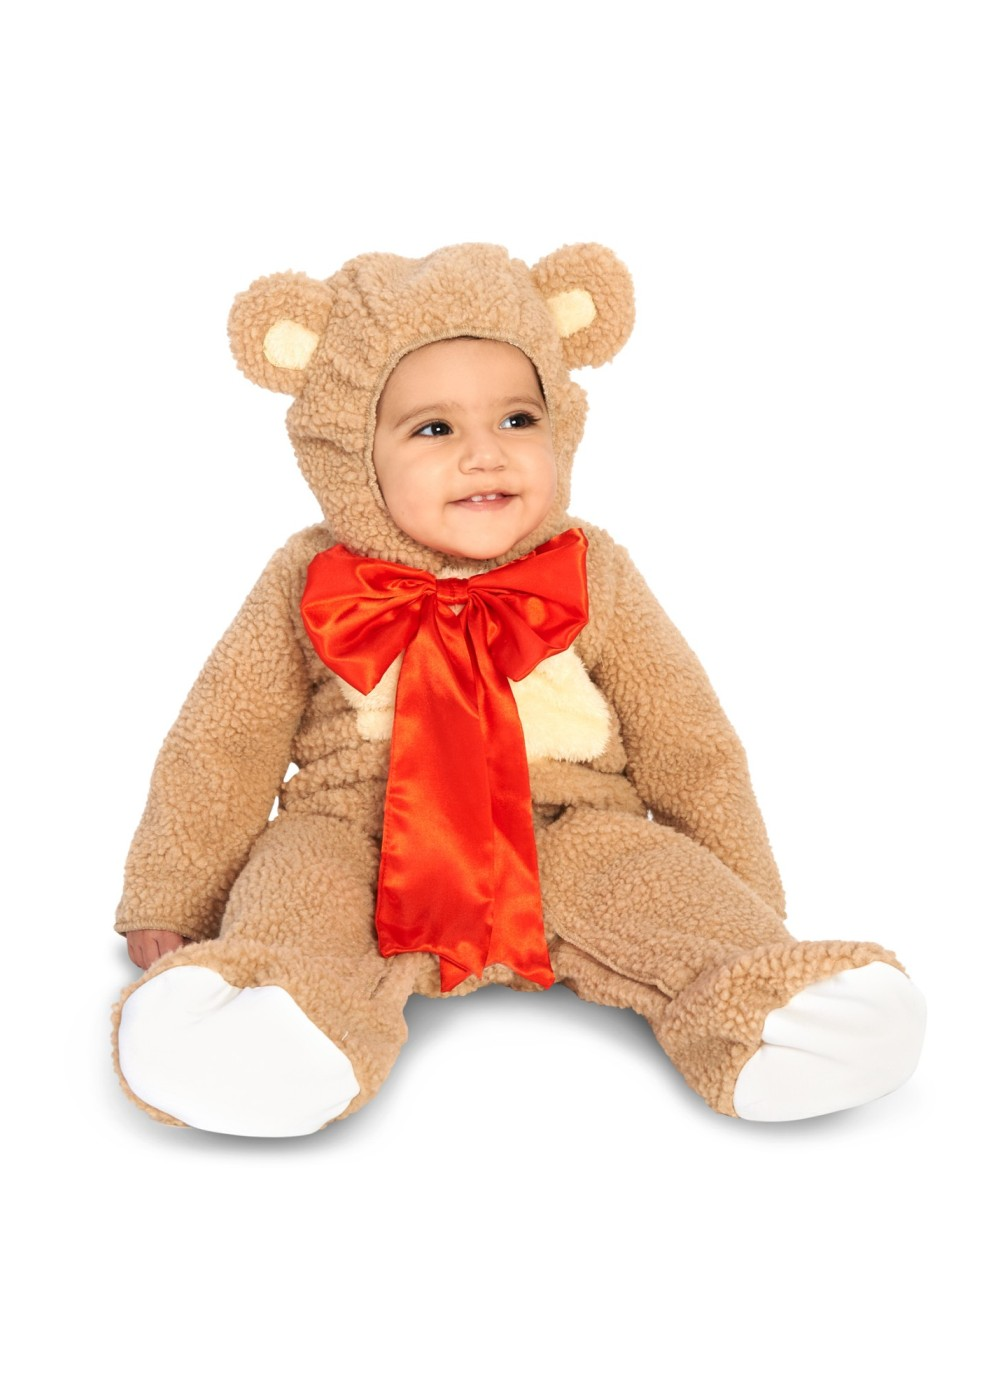 Cuddly Teddy Bear Infant Boys Costume